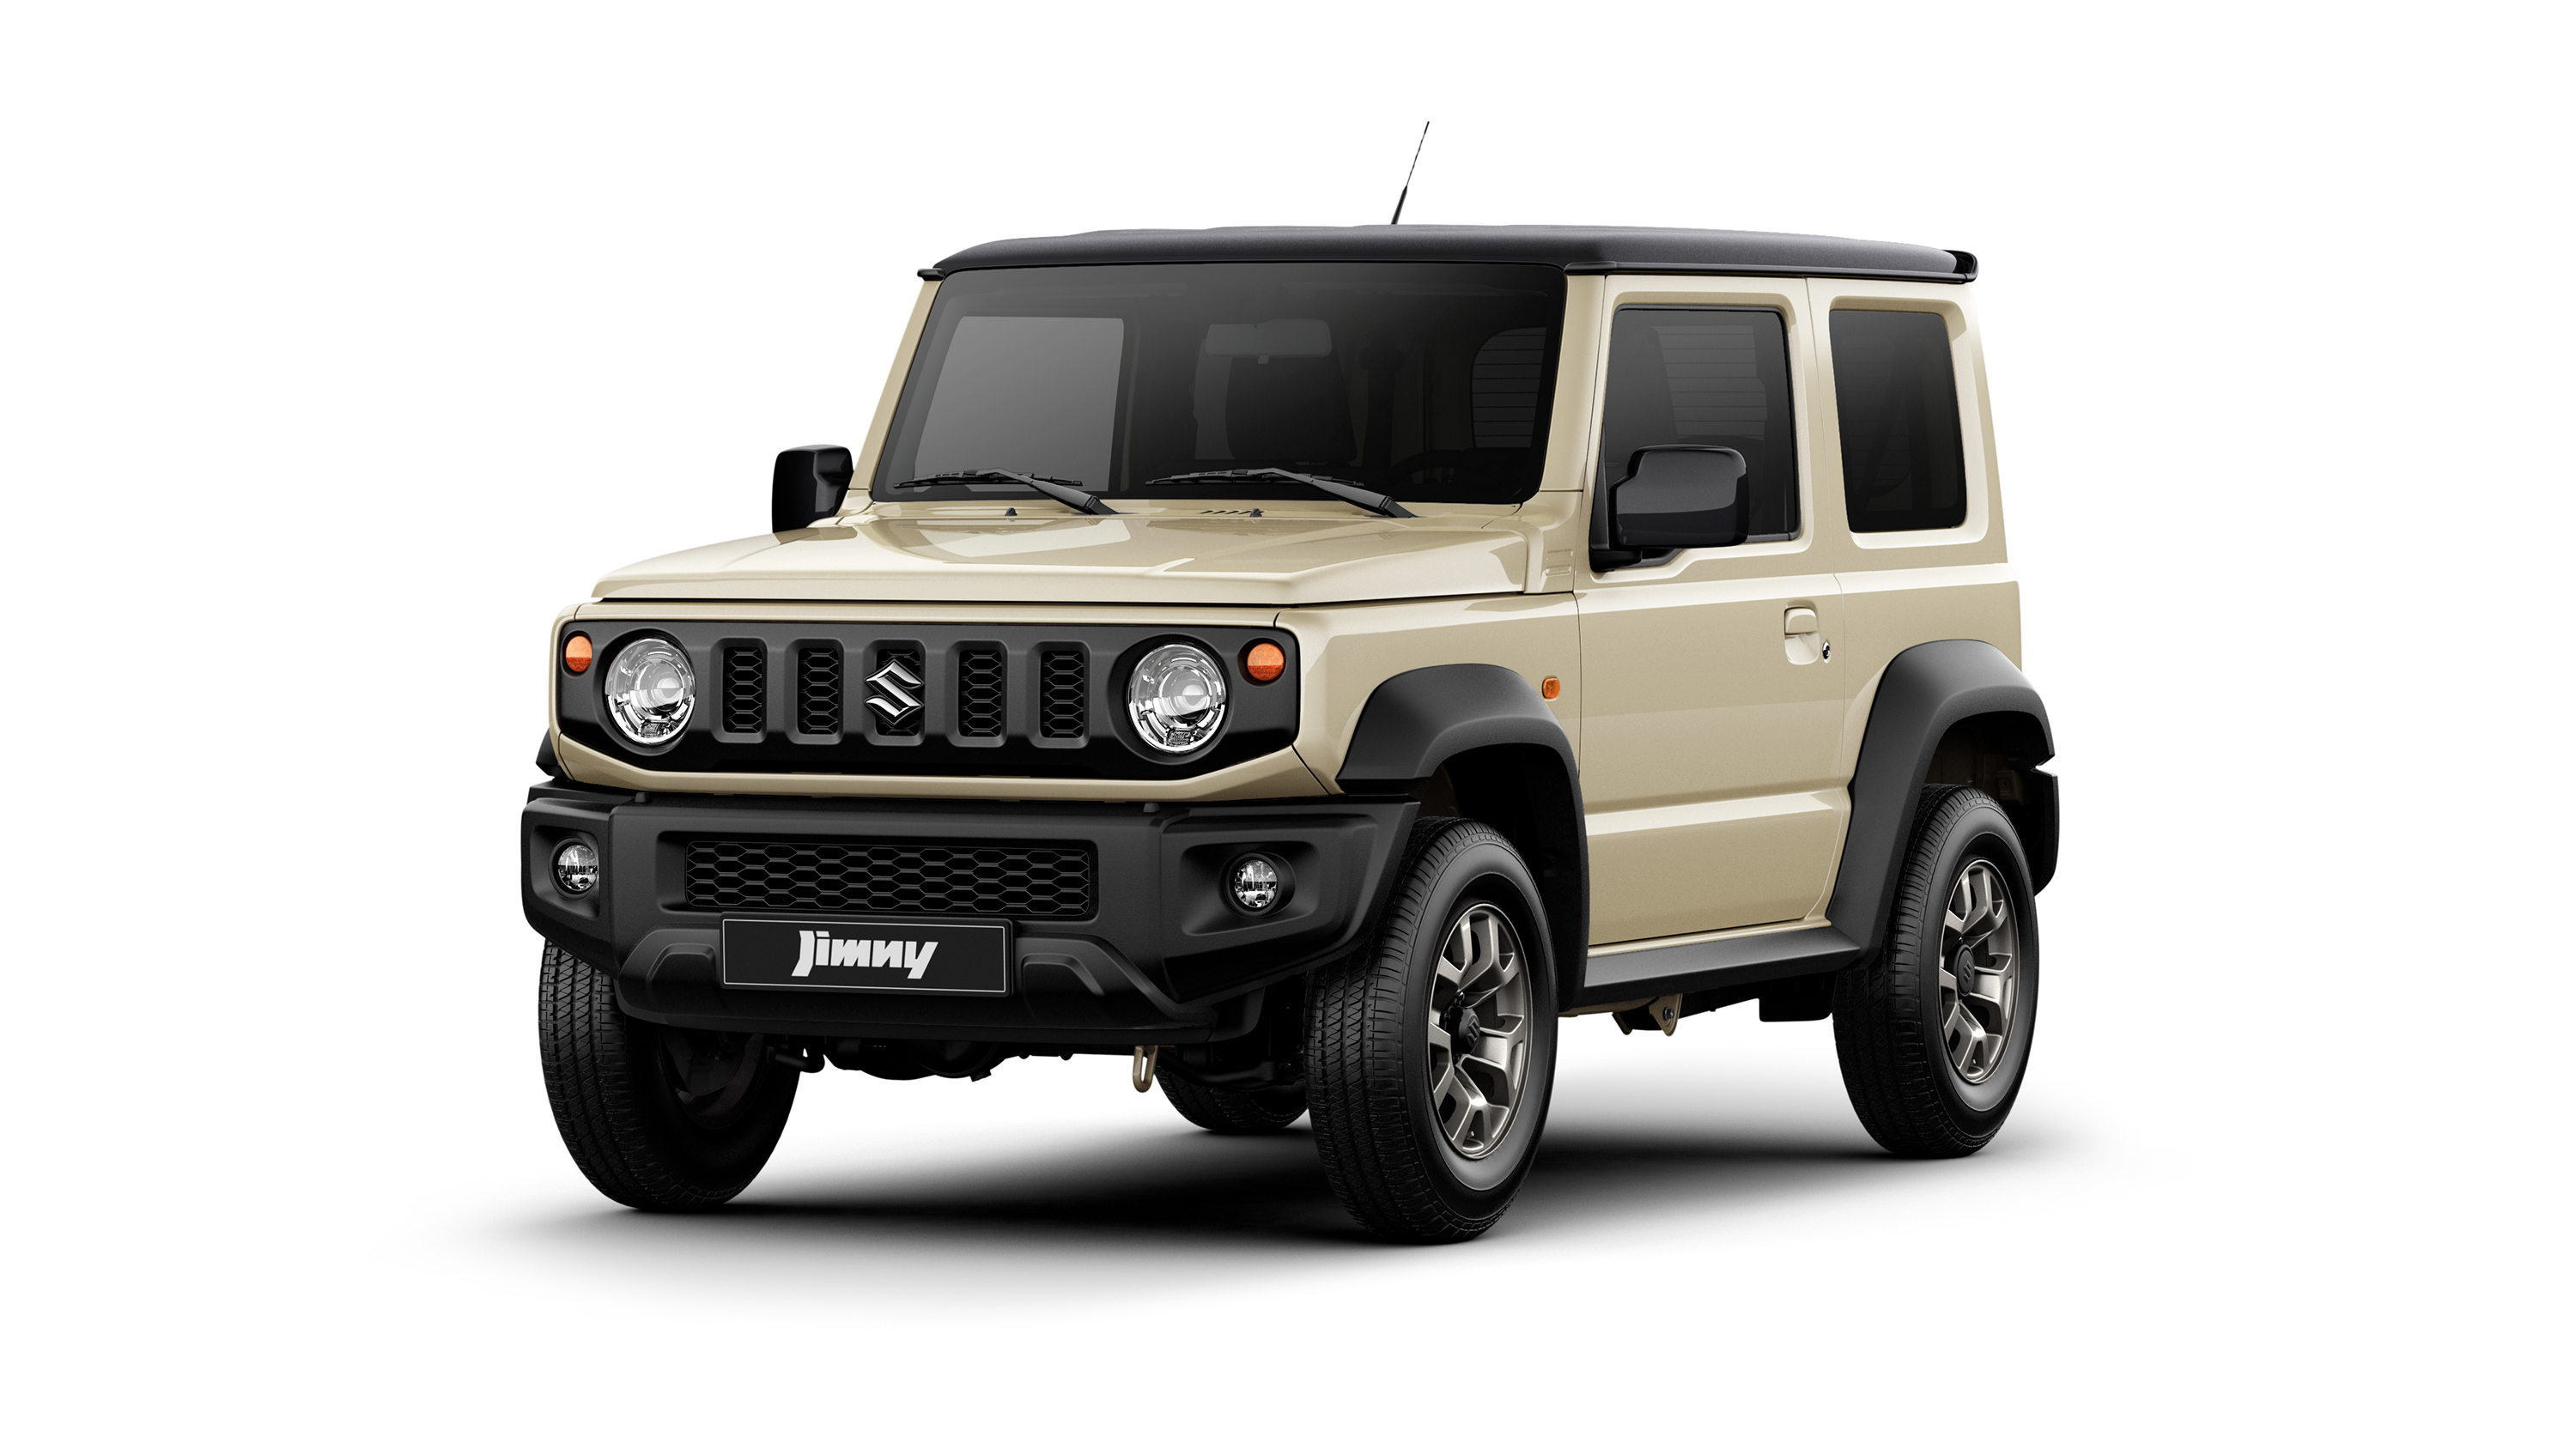 Suzuki Jimny fully revealed ahead of debut